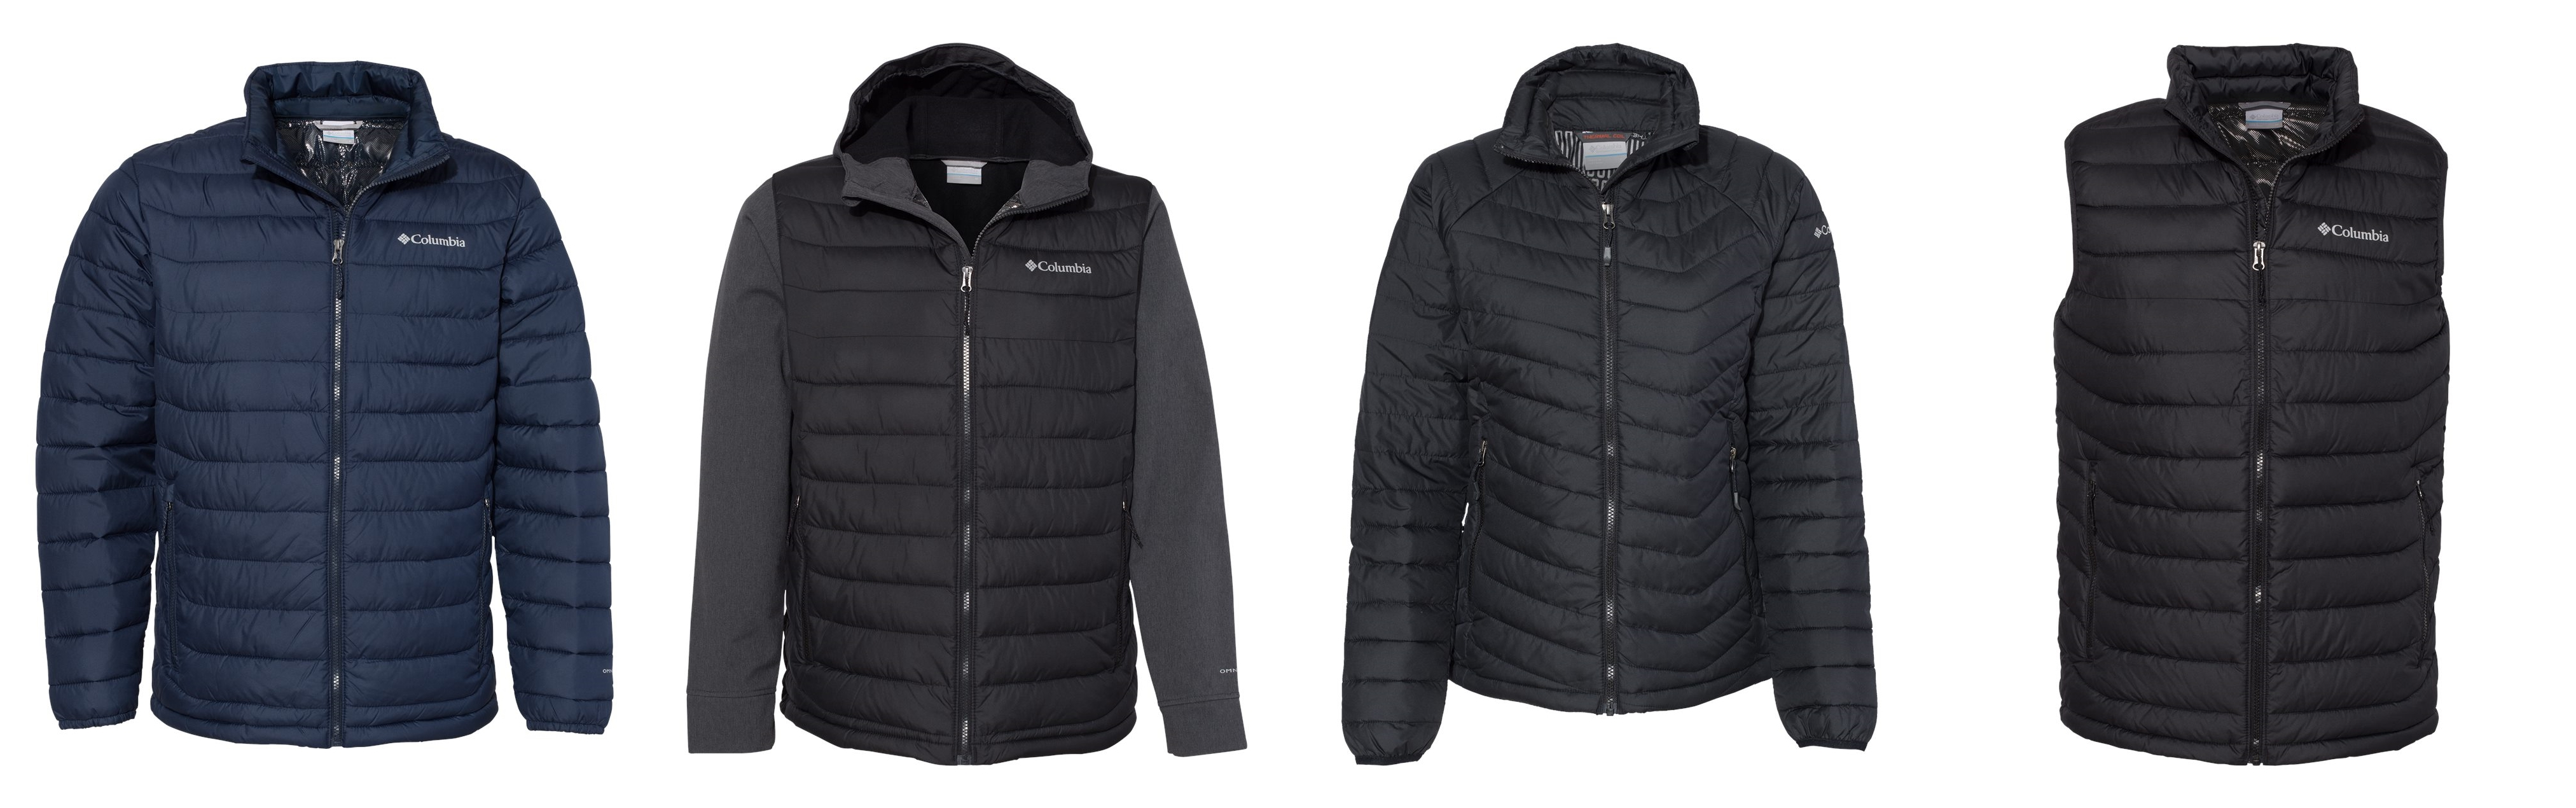 Columbia Insulated Jackets from NYFifth